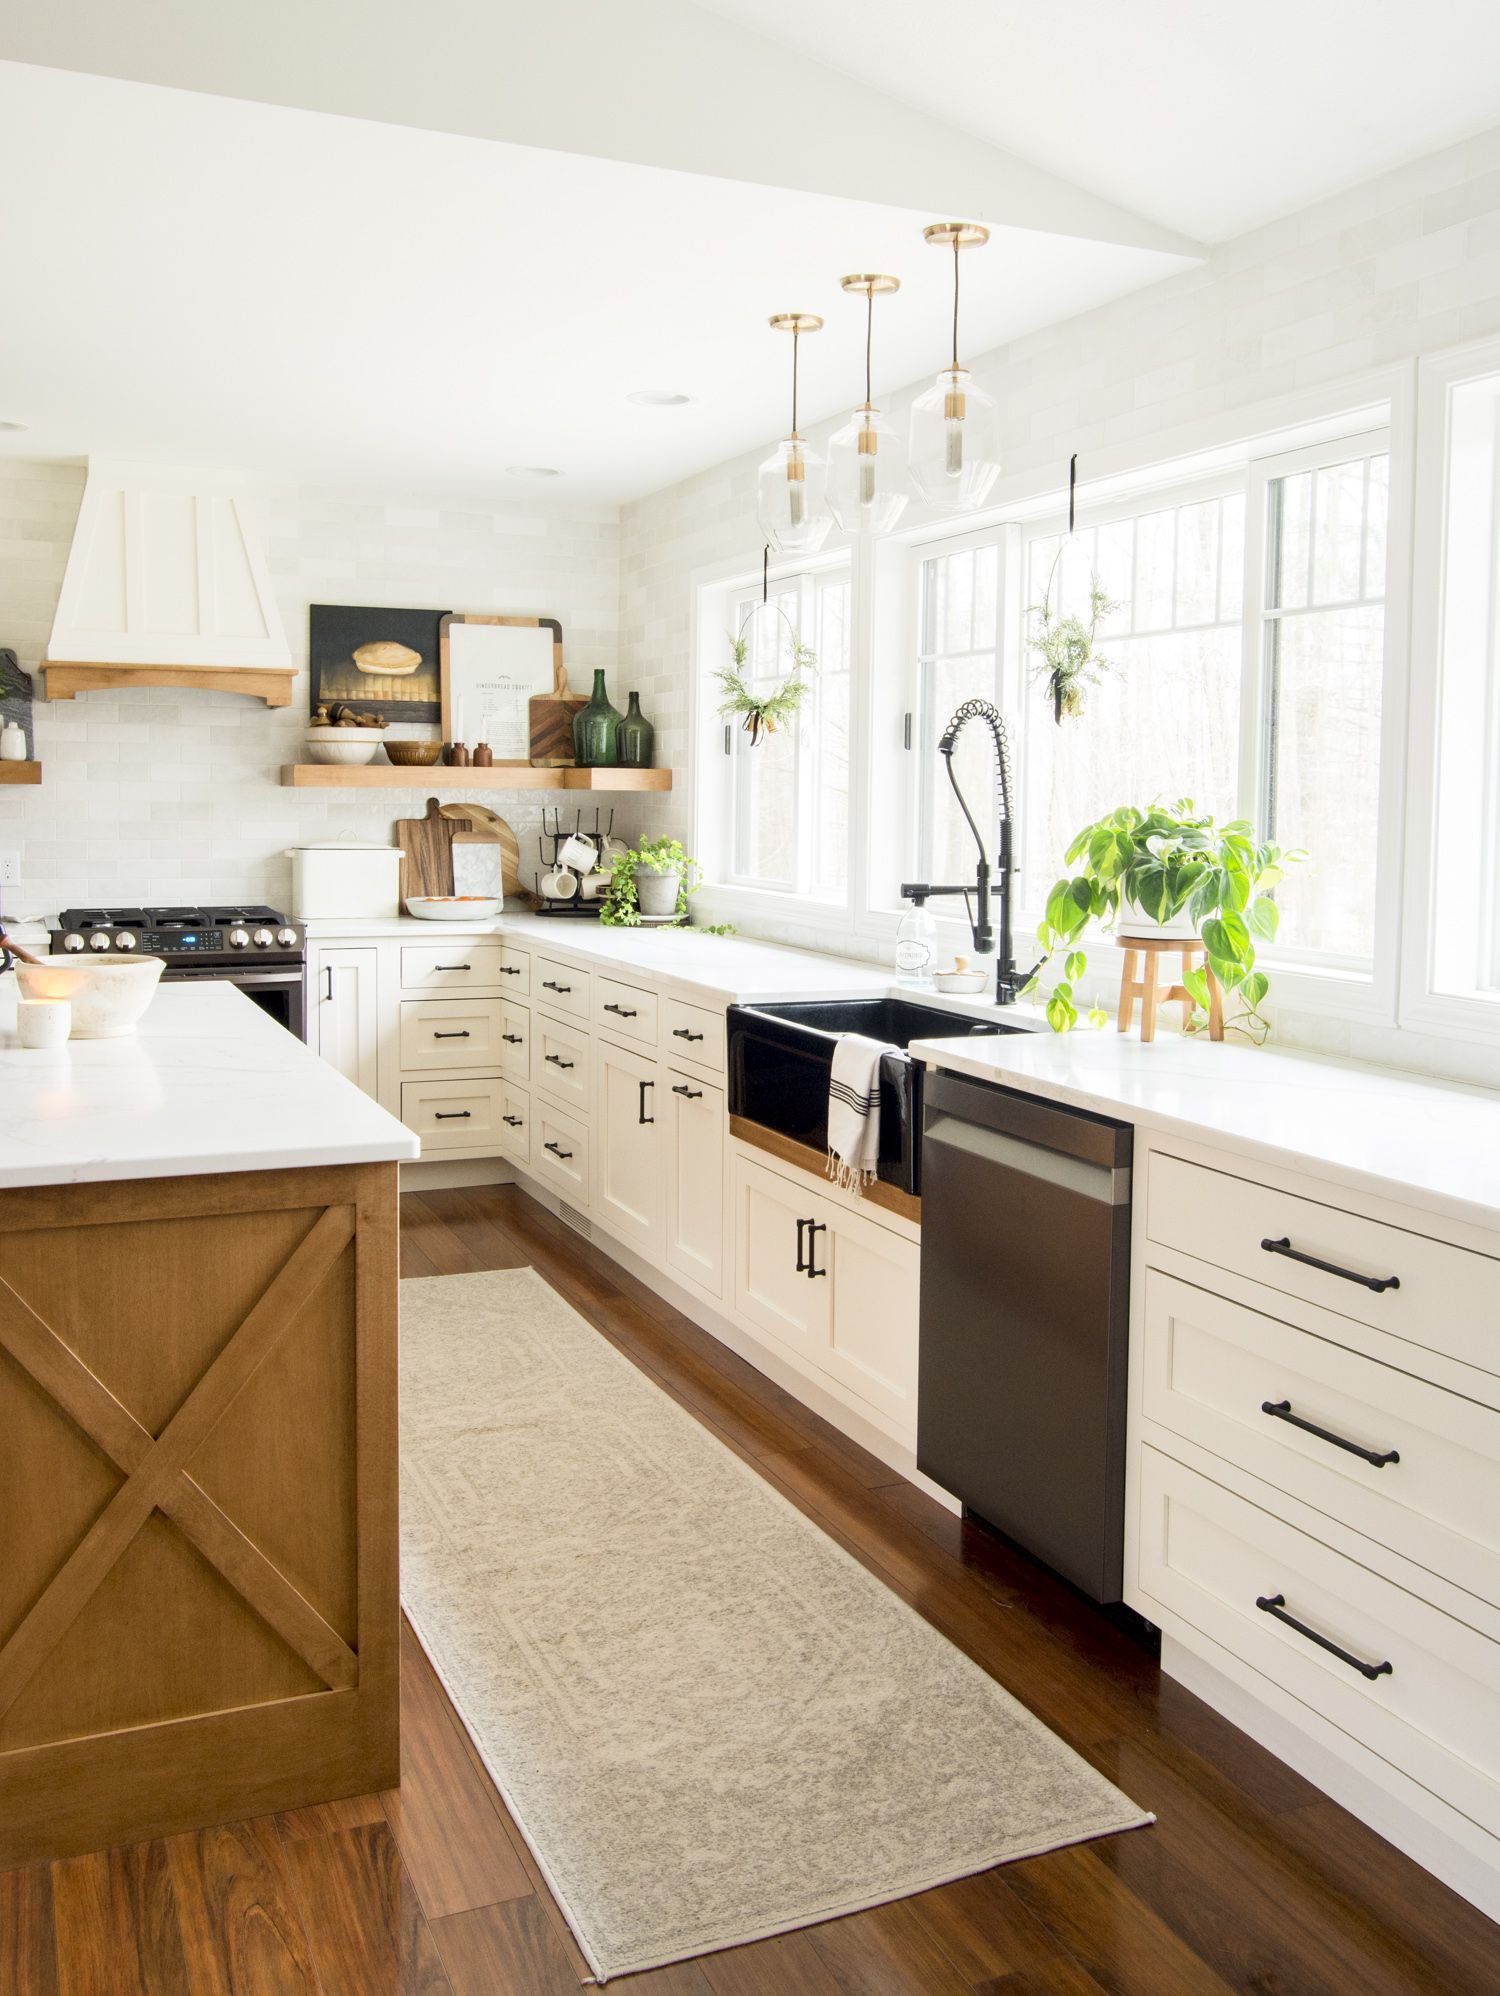 kitchen planner for beautiful functional design kitchen planner kitchen remodel design on how to remodel your kitchen id=36753